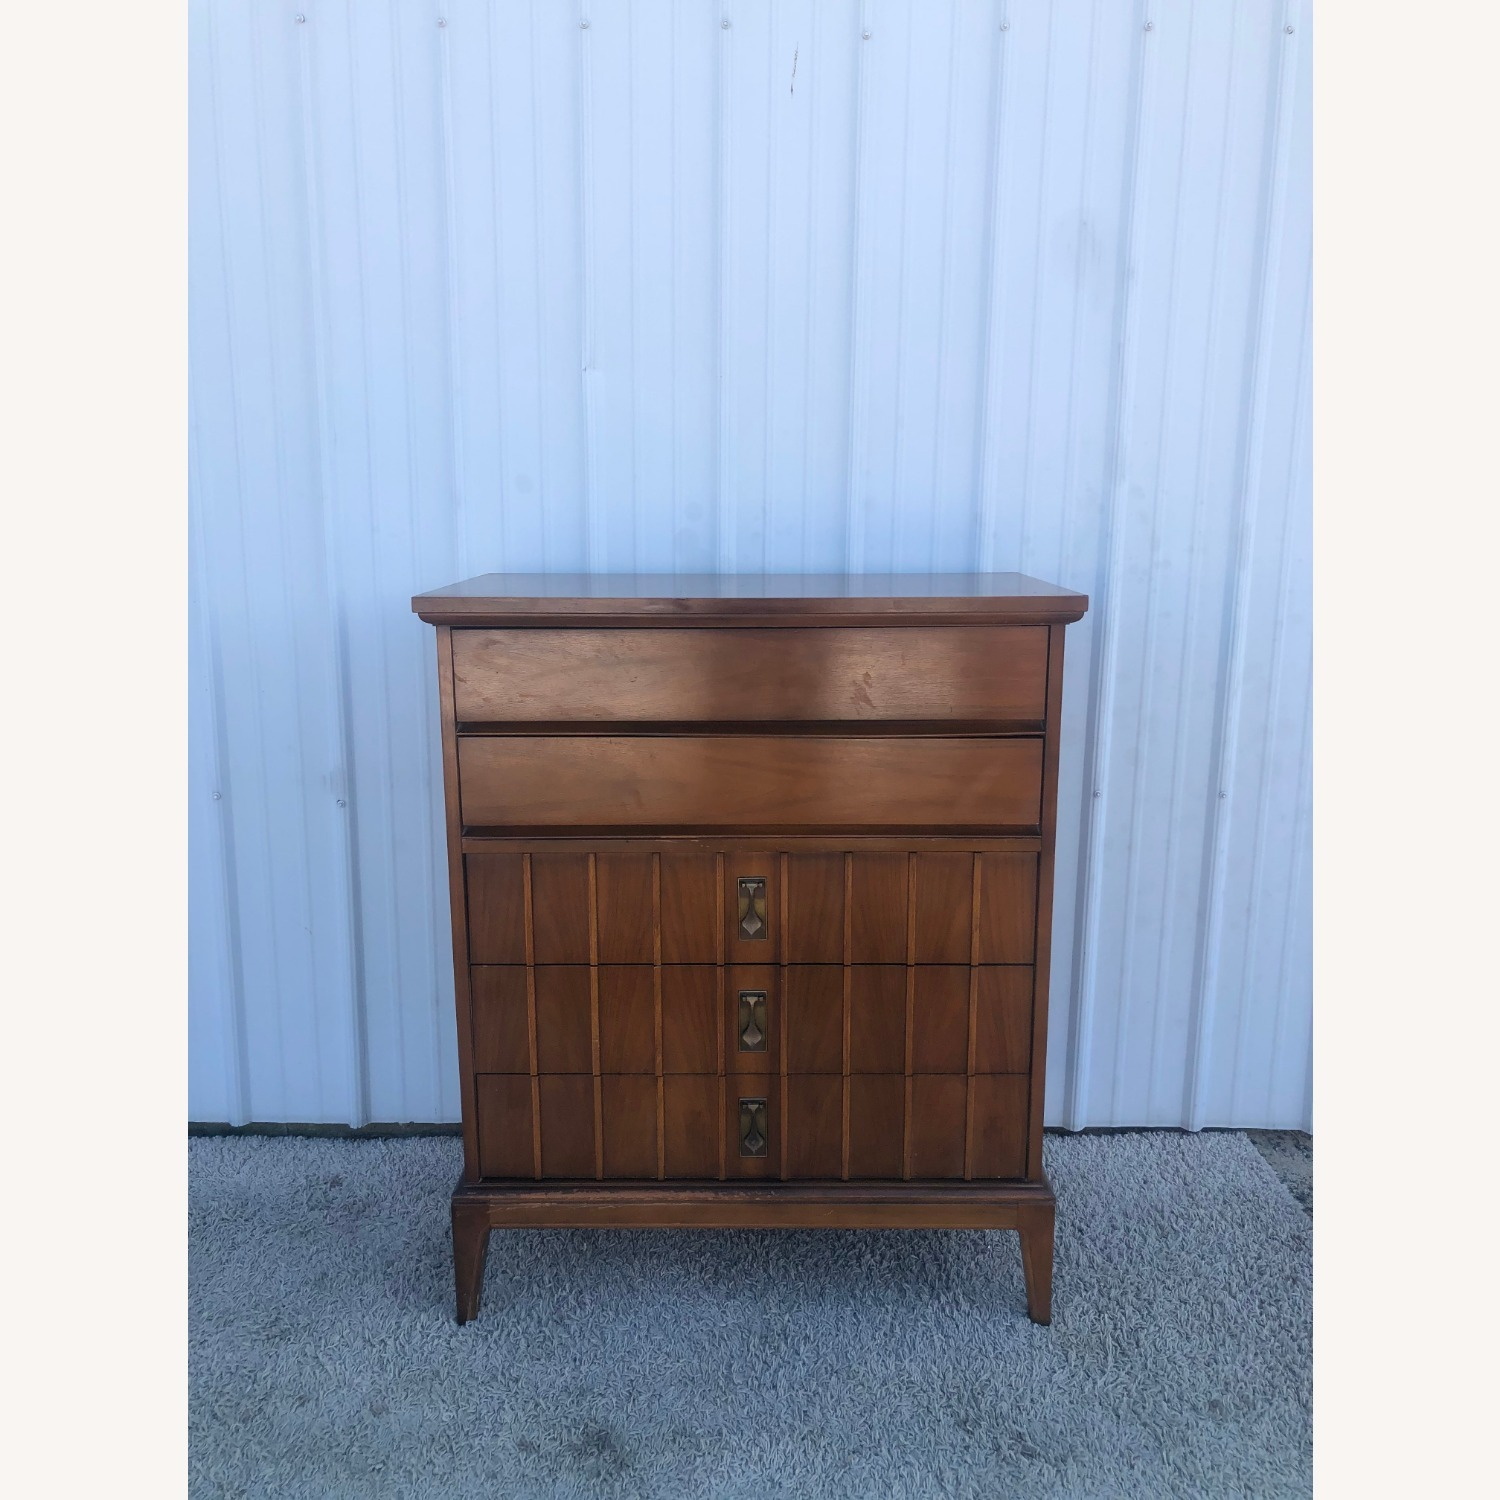 Mid Century Highboy Dresser with 5 Drawers - image-18